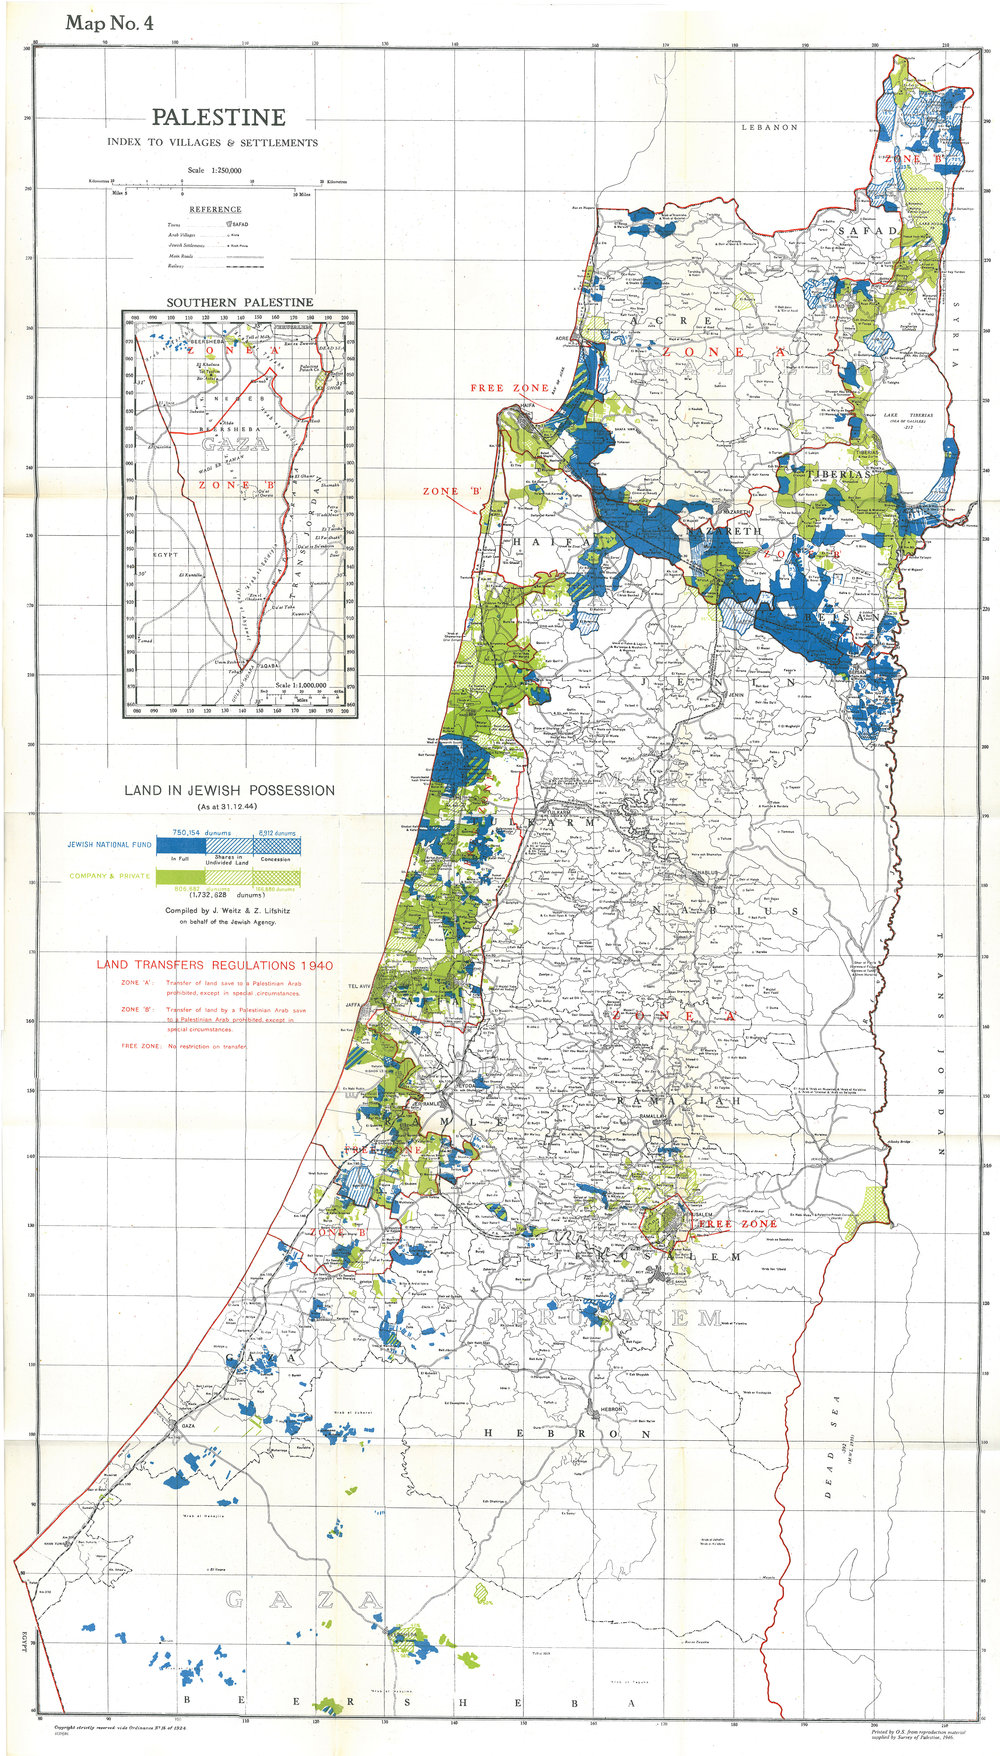 Palestine_Index_to_Villages_and_Settlements,_showing_Land_in_Jewish_Possession_as_at_31.12.44.jpg